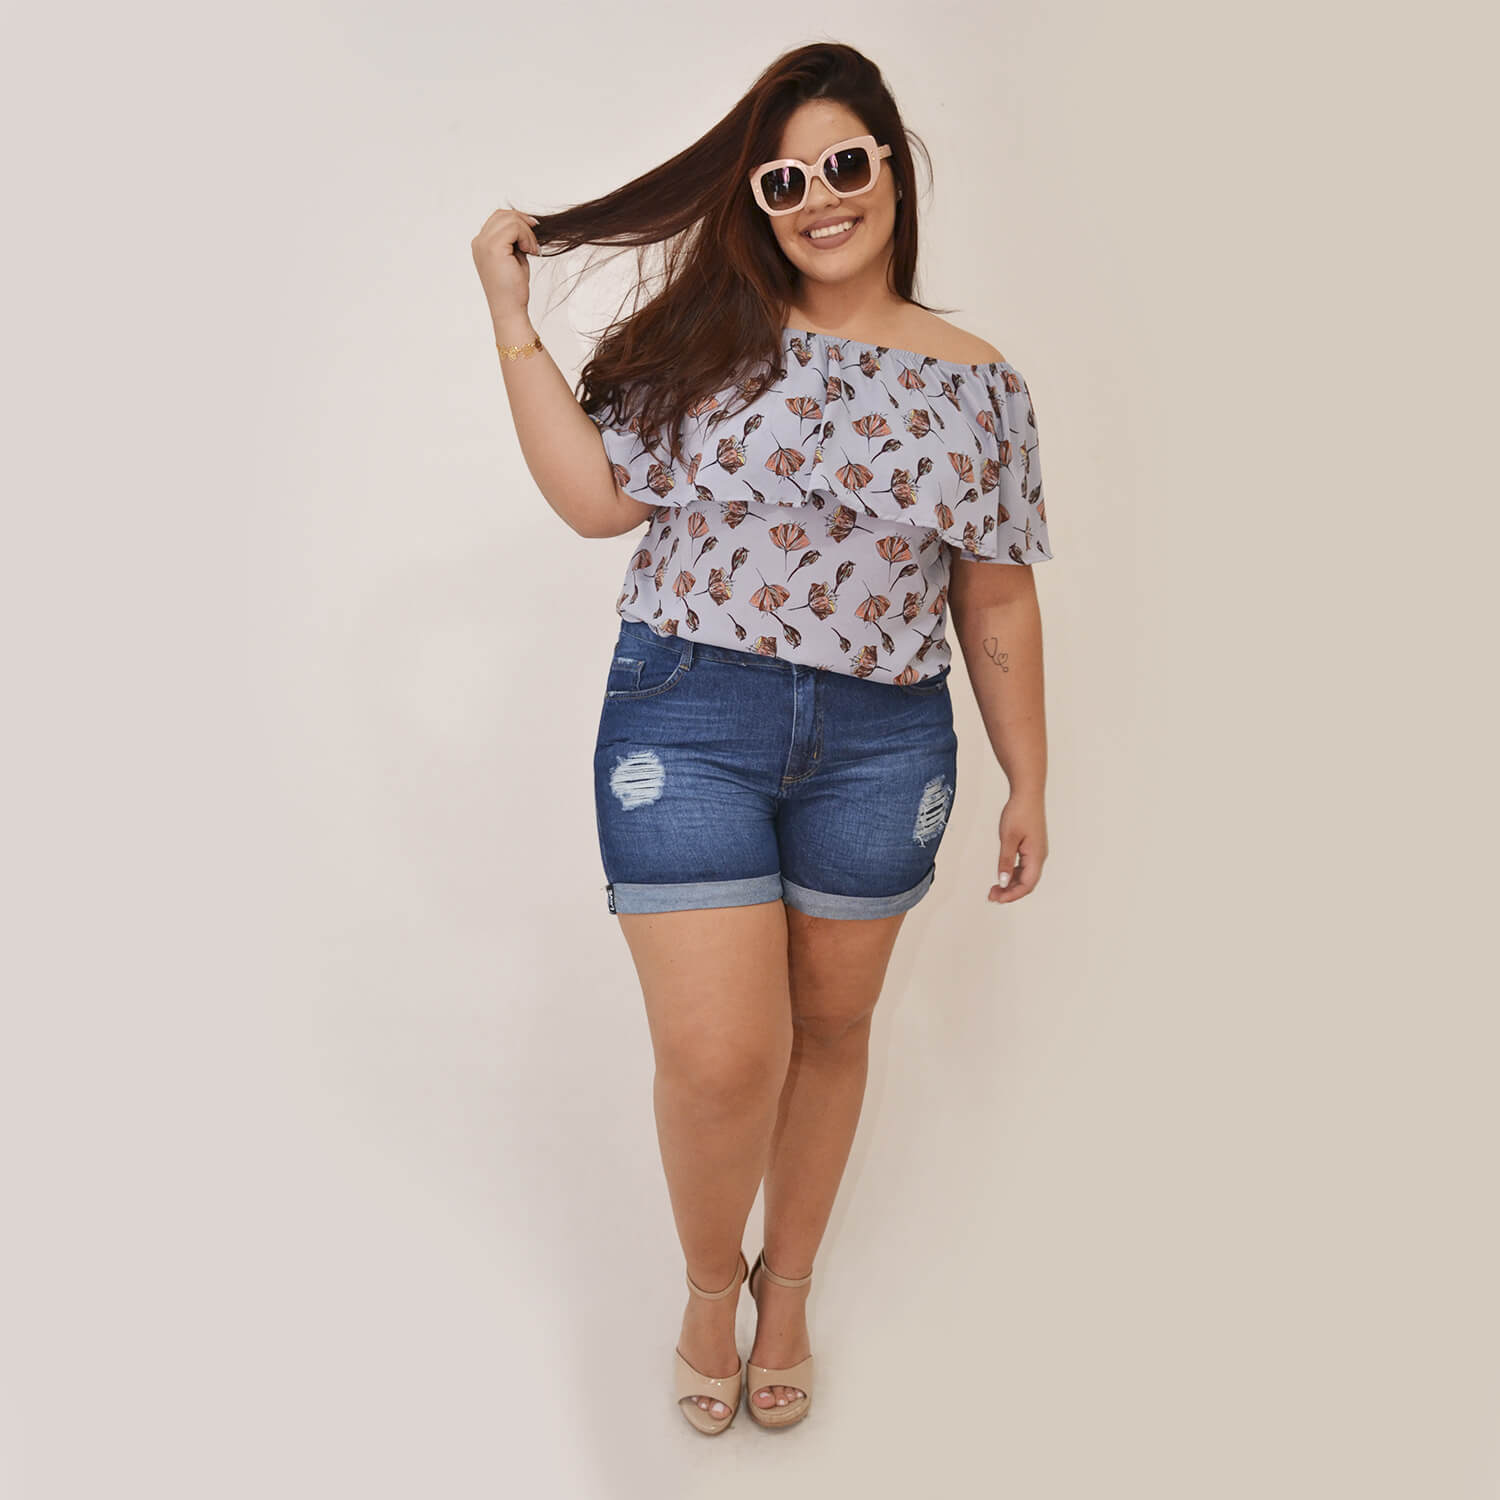 Blusa Feminina Plus Size Ana  - Annual Plus